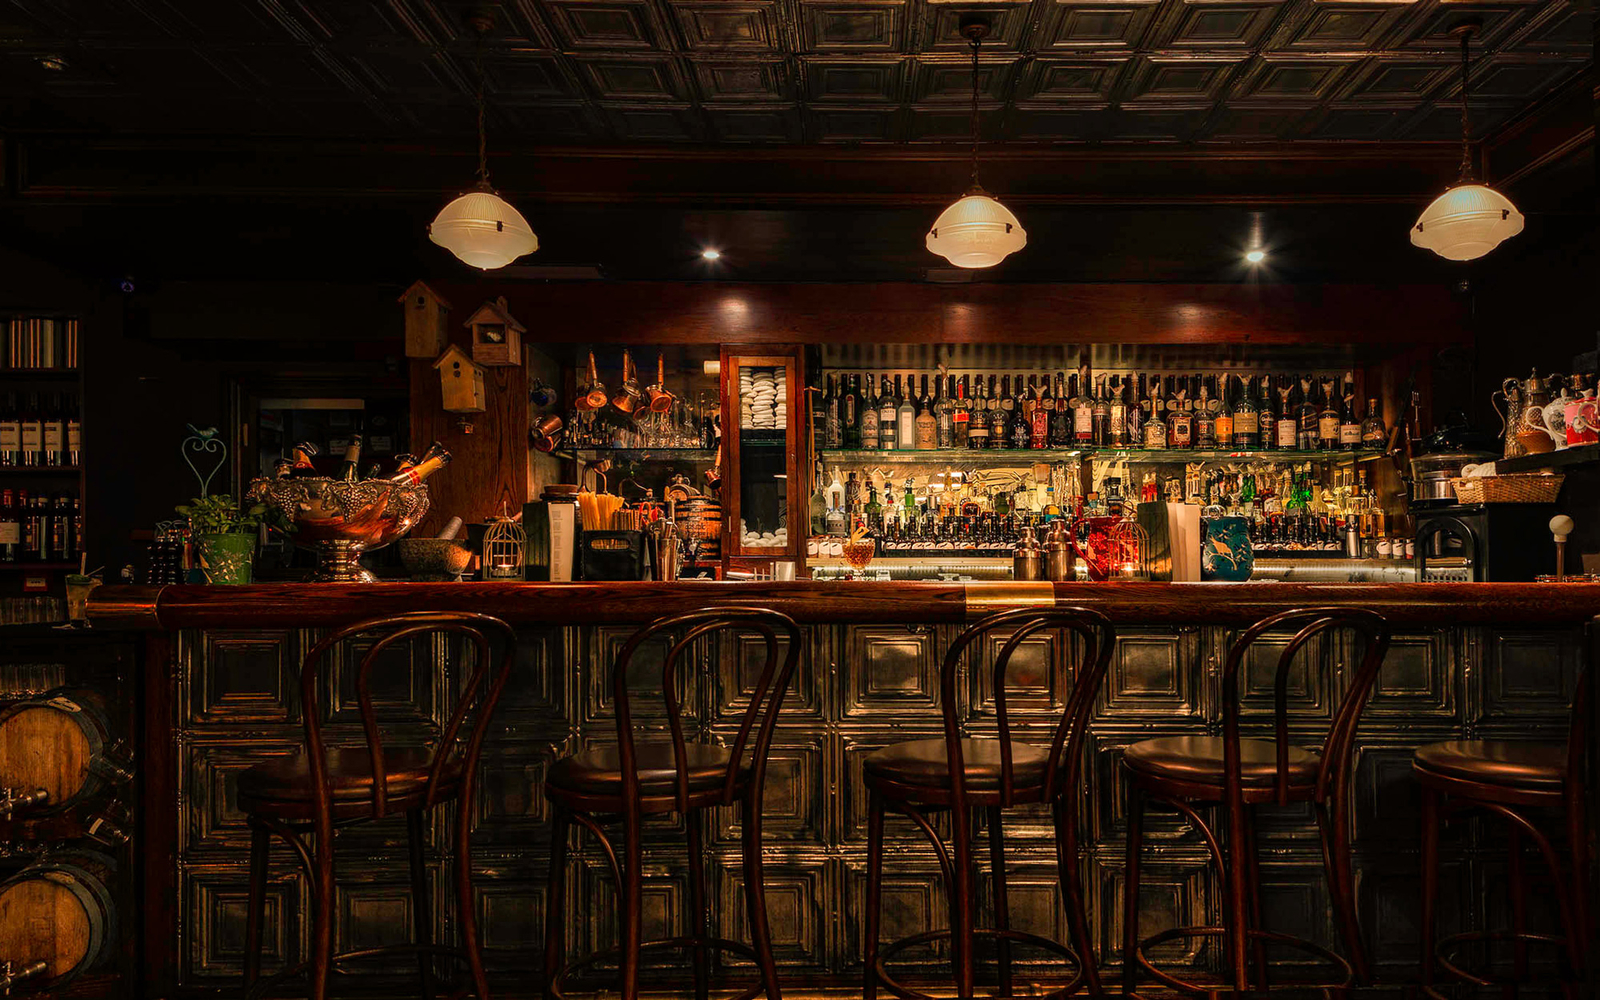 3. Nightjar, London